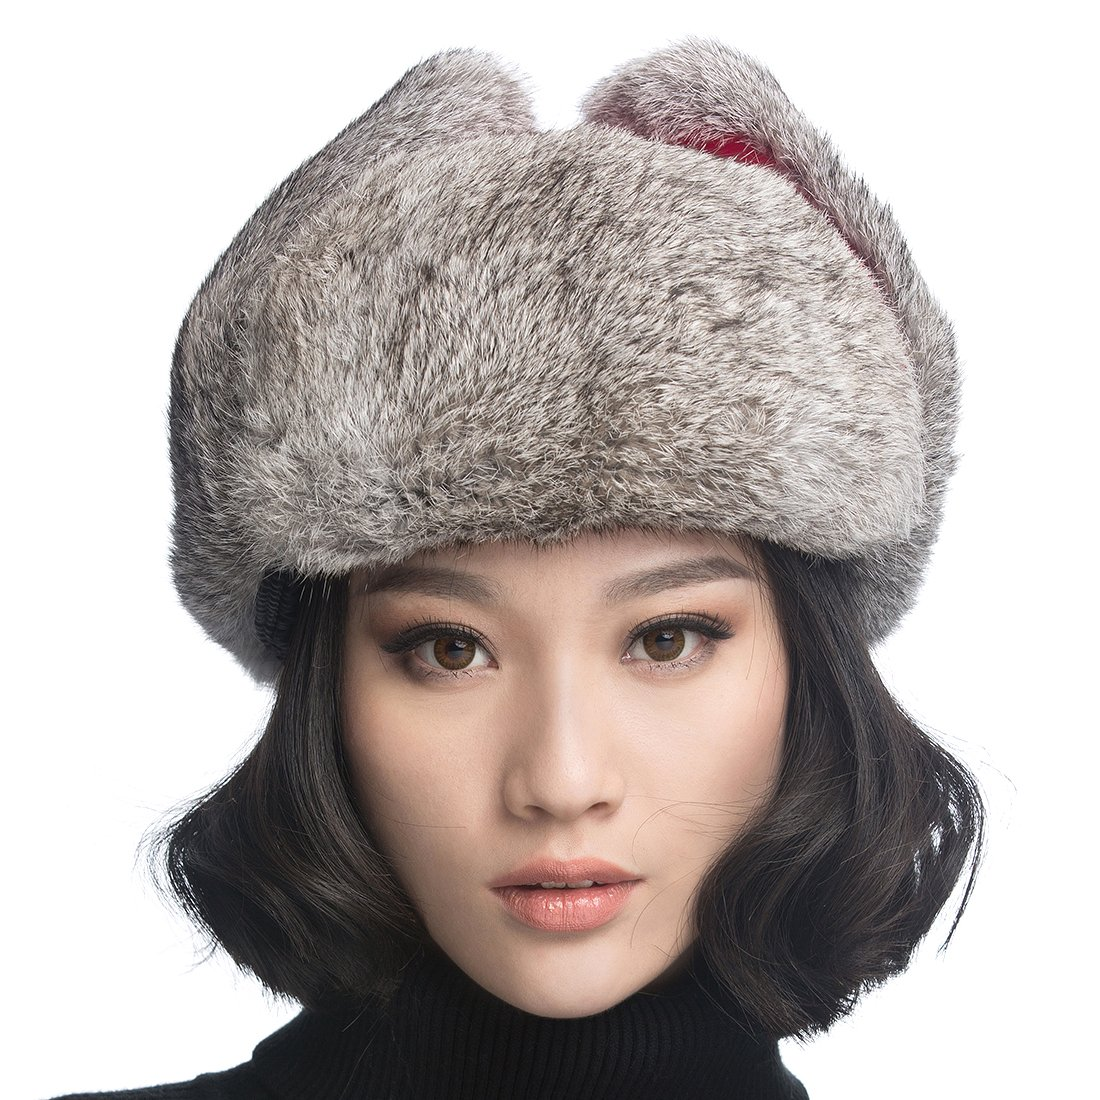 URSFUR Aviator Hat with Grey Rabbit Fur .Ltd. GCID-YZM-LF-01-4-X